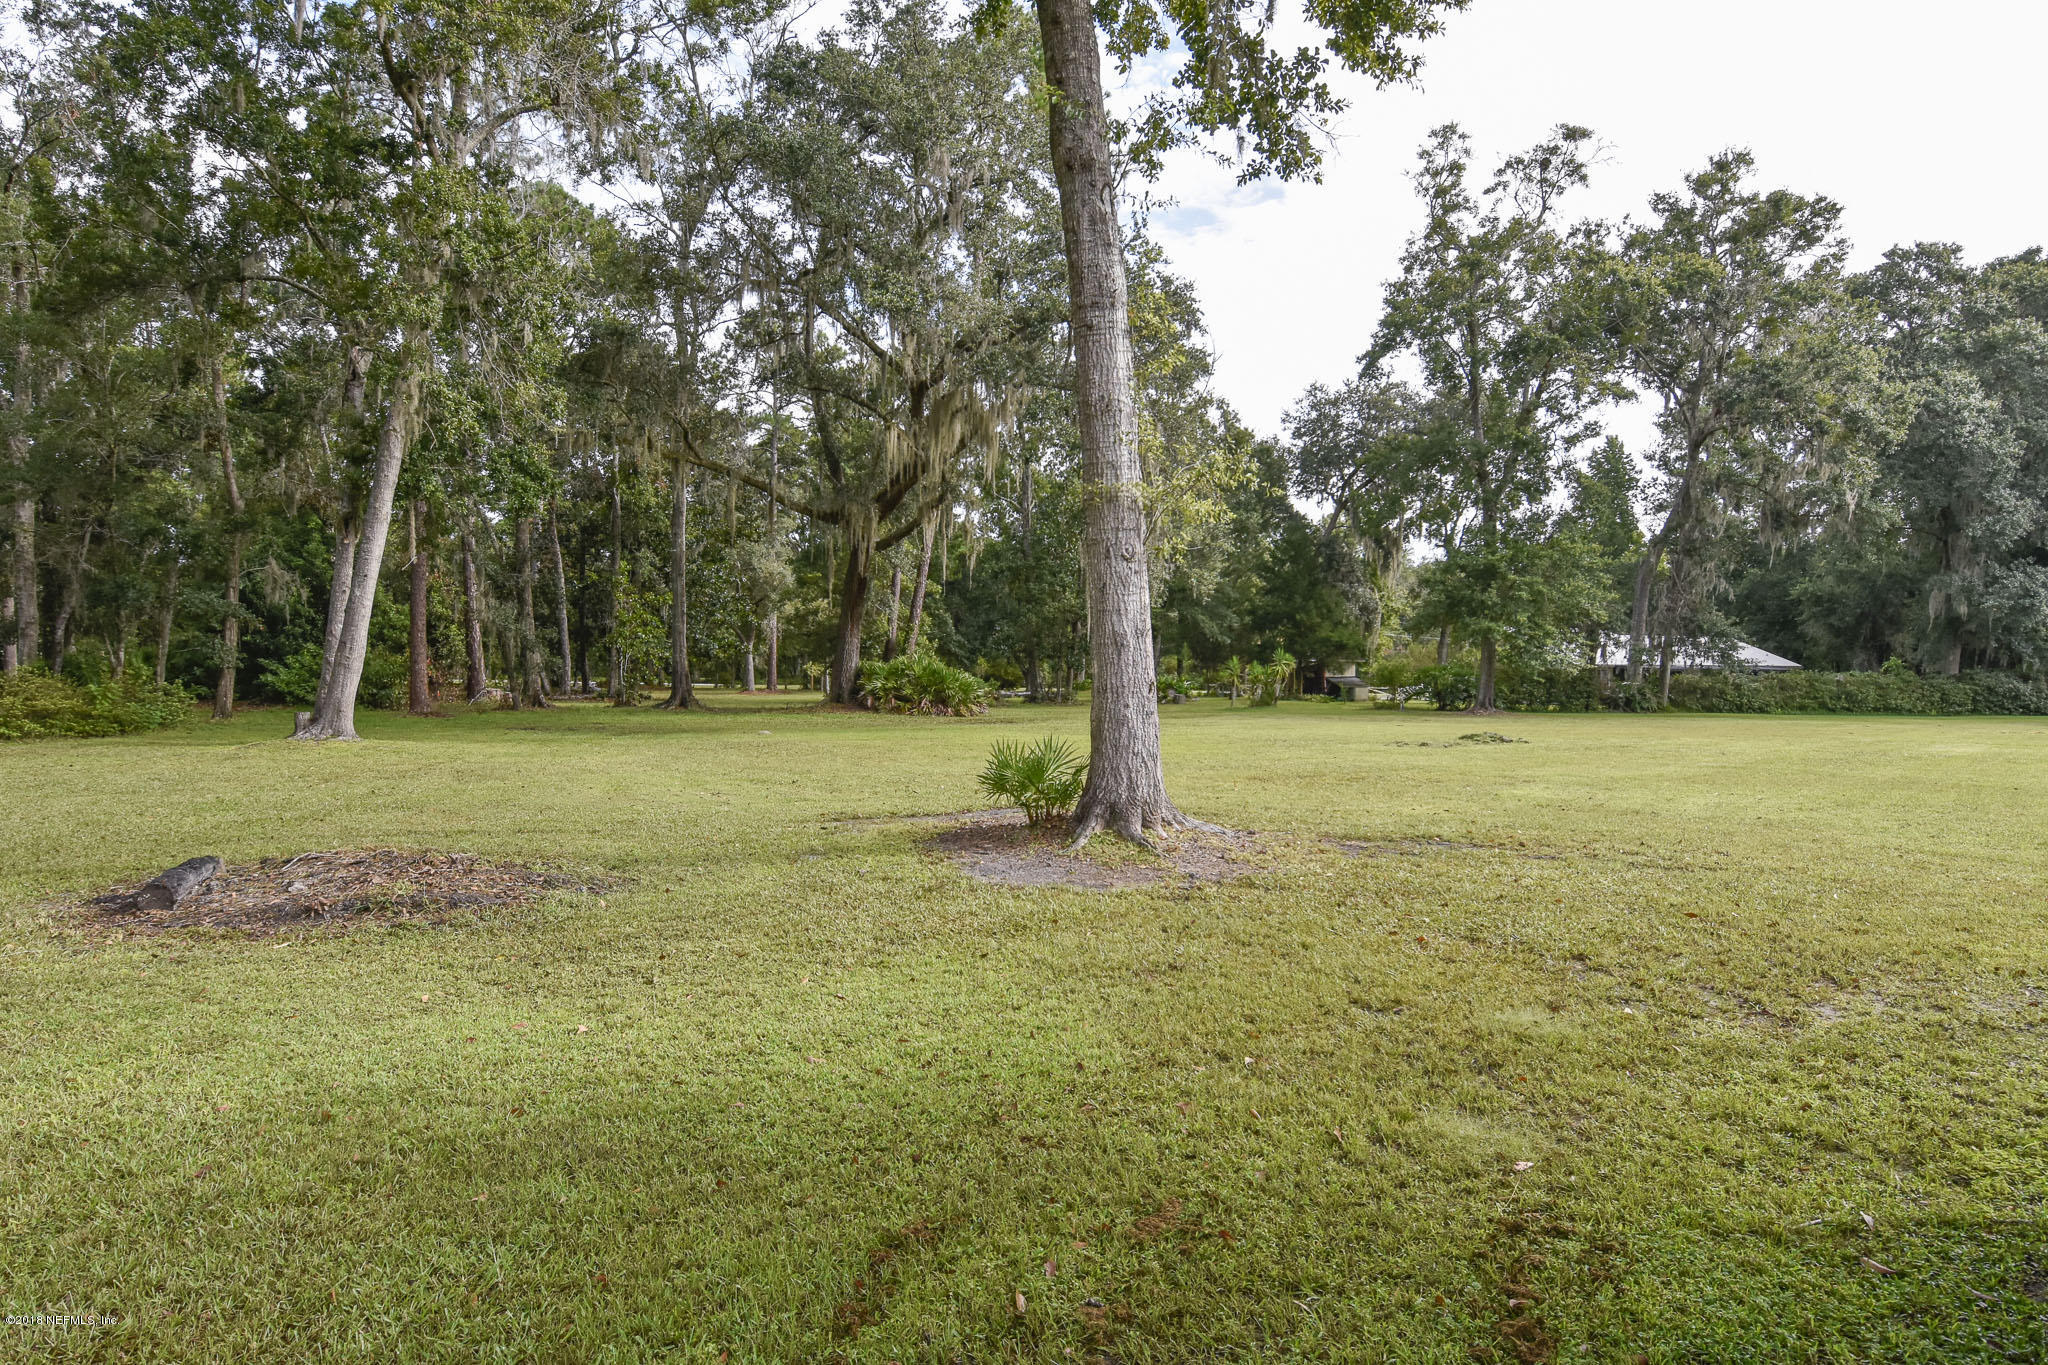 20644 115TH, EARLTON, FLORIDA 32631, 3 Bedrooms Bedrooms, ,2 BathroomsBathrooms,Residential - single family,For sale,115TH,936010